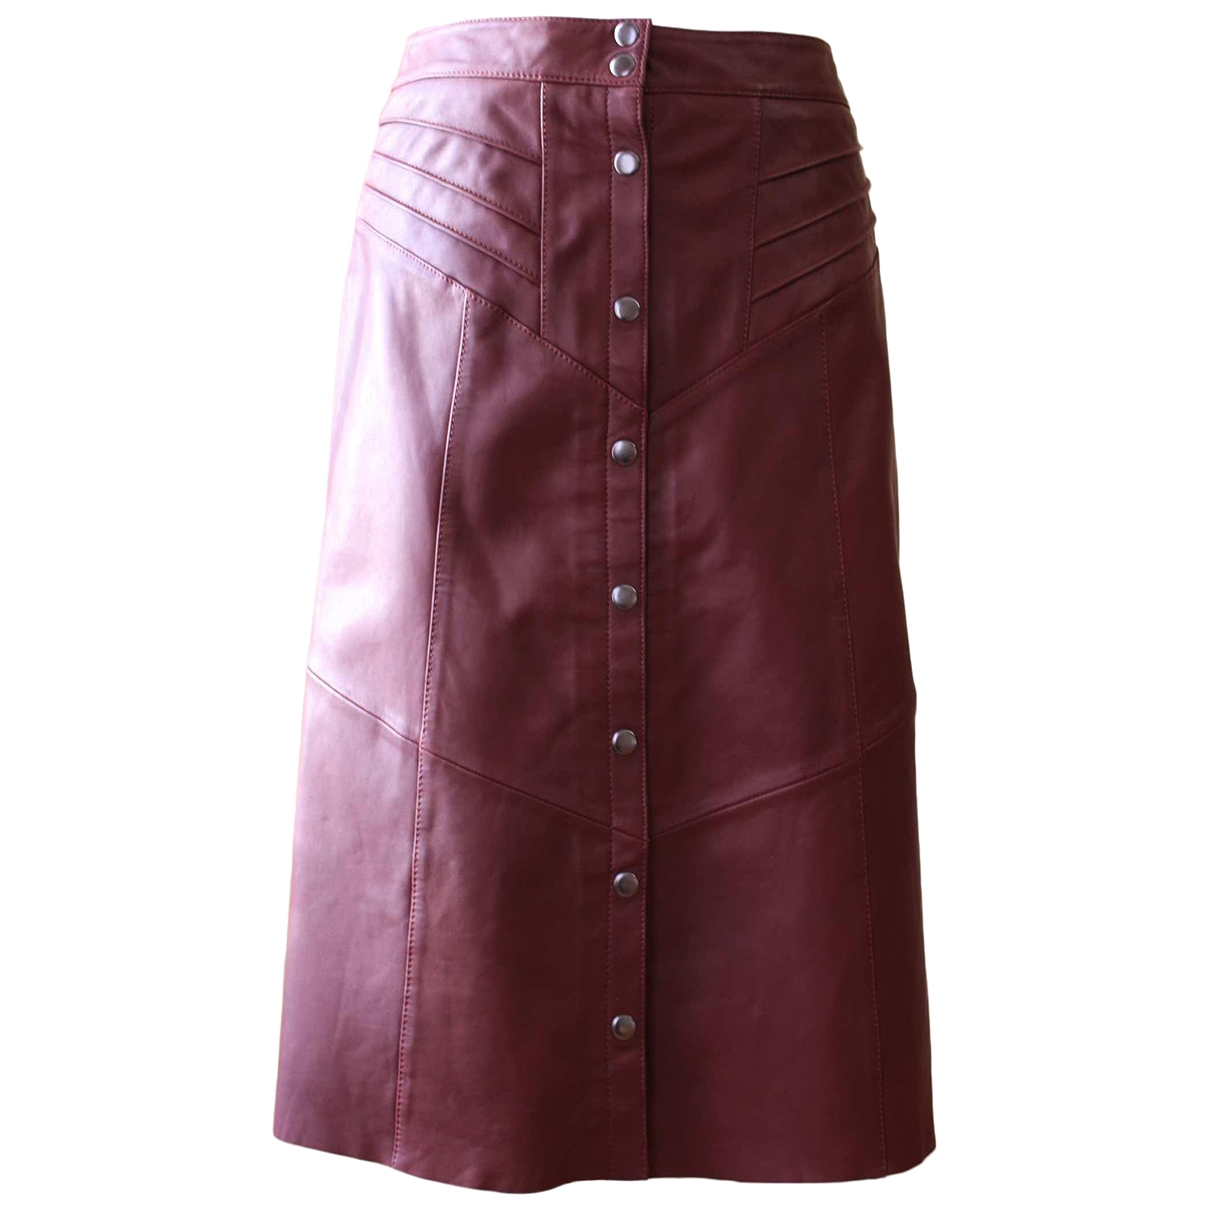 Les Petites \N Burgundy Leather skirt for Women 40 FR